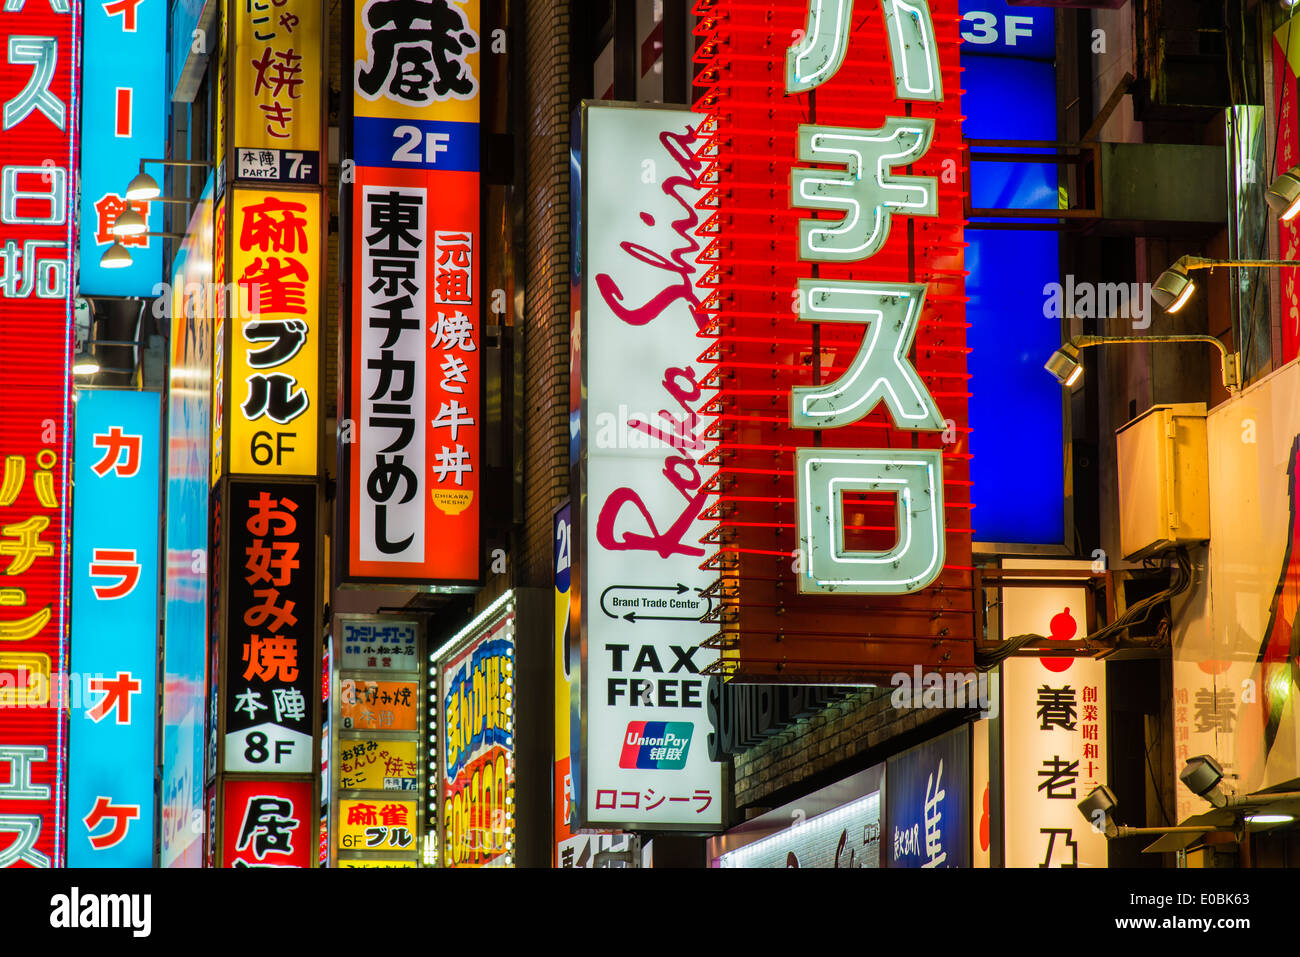 Colorful neon lights in Yasukuni-dori street, Shinjuku district, Tokyo, Japan - Stock Image